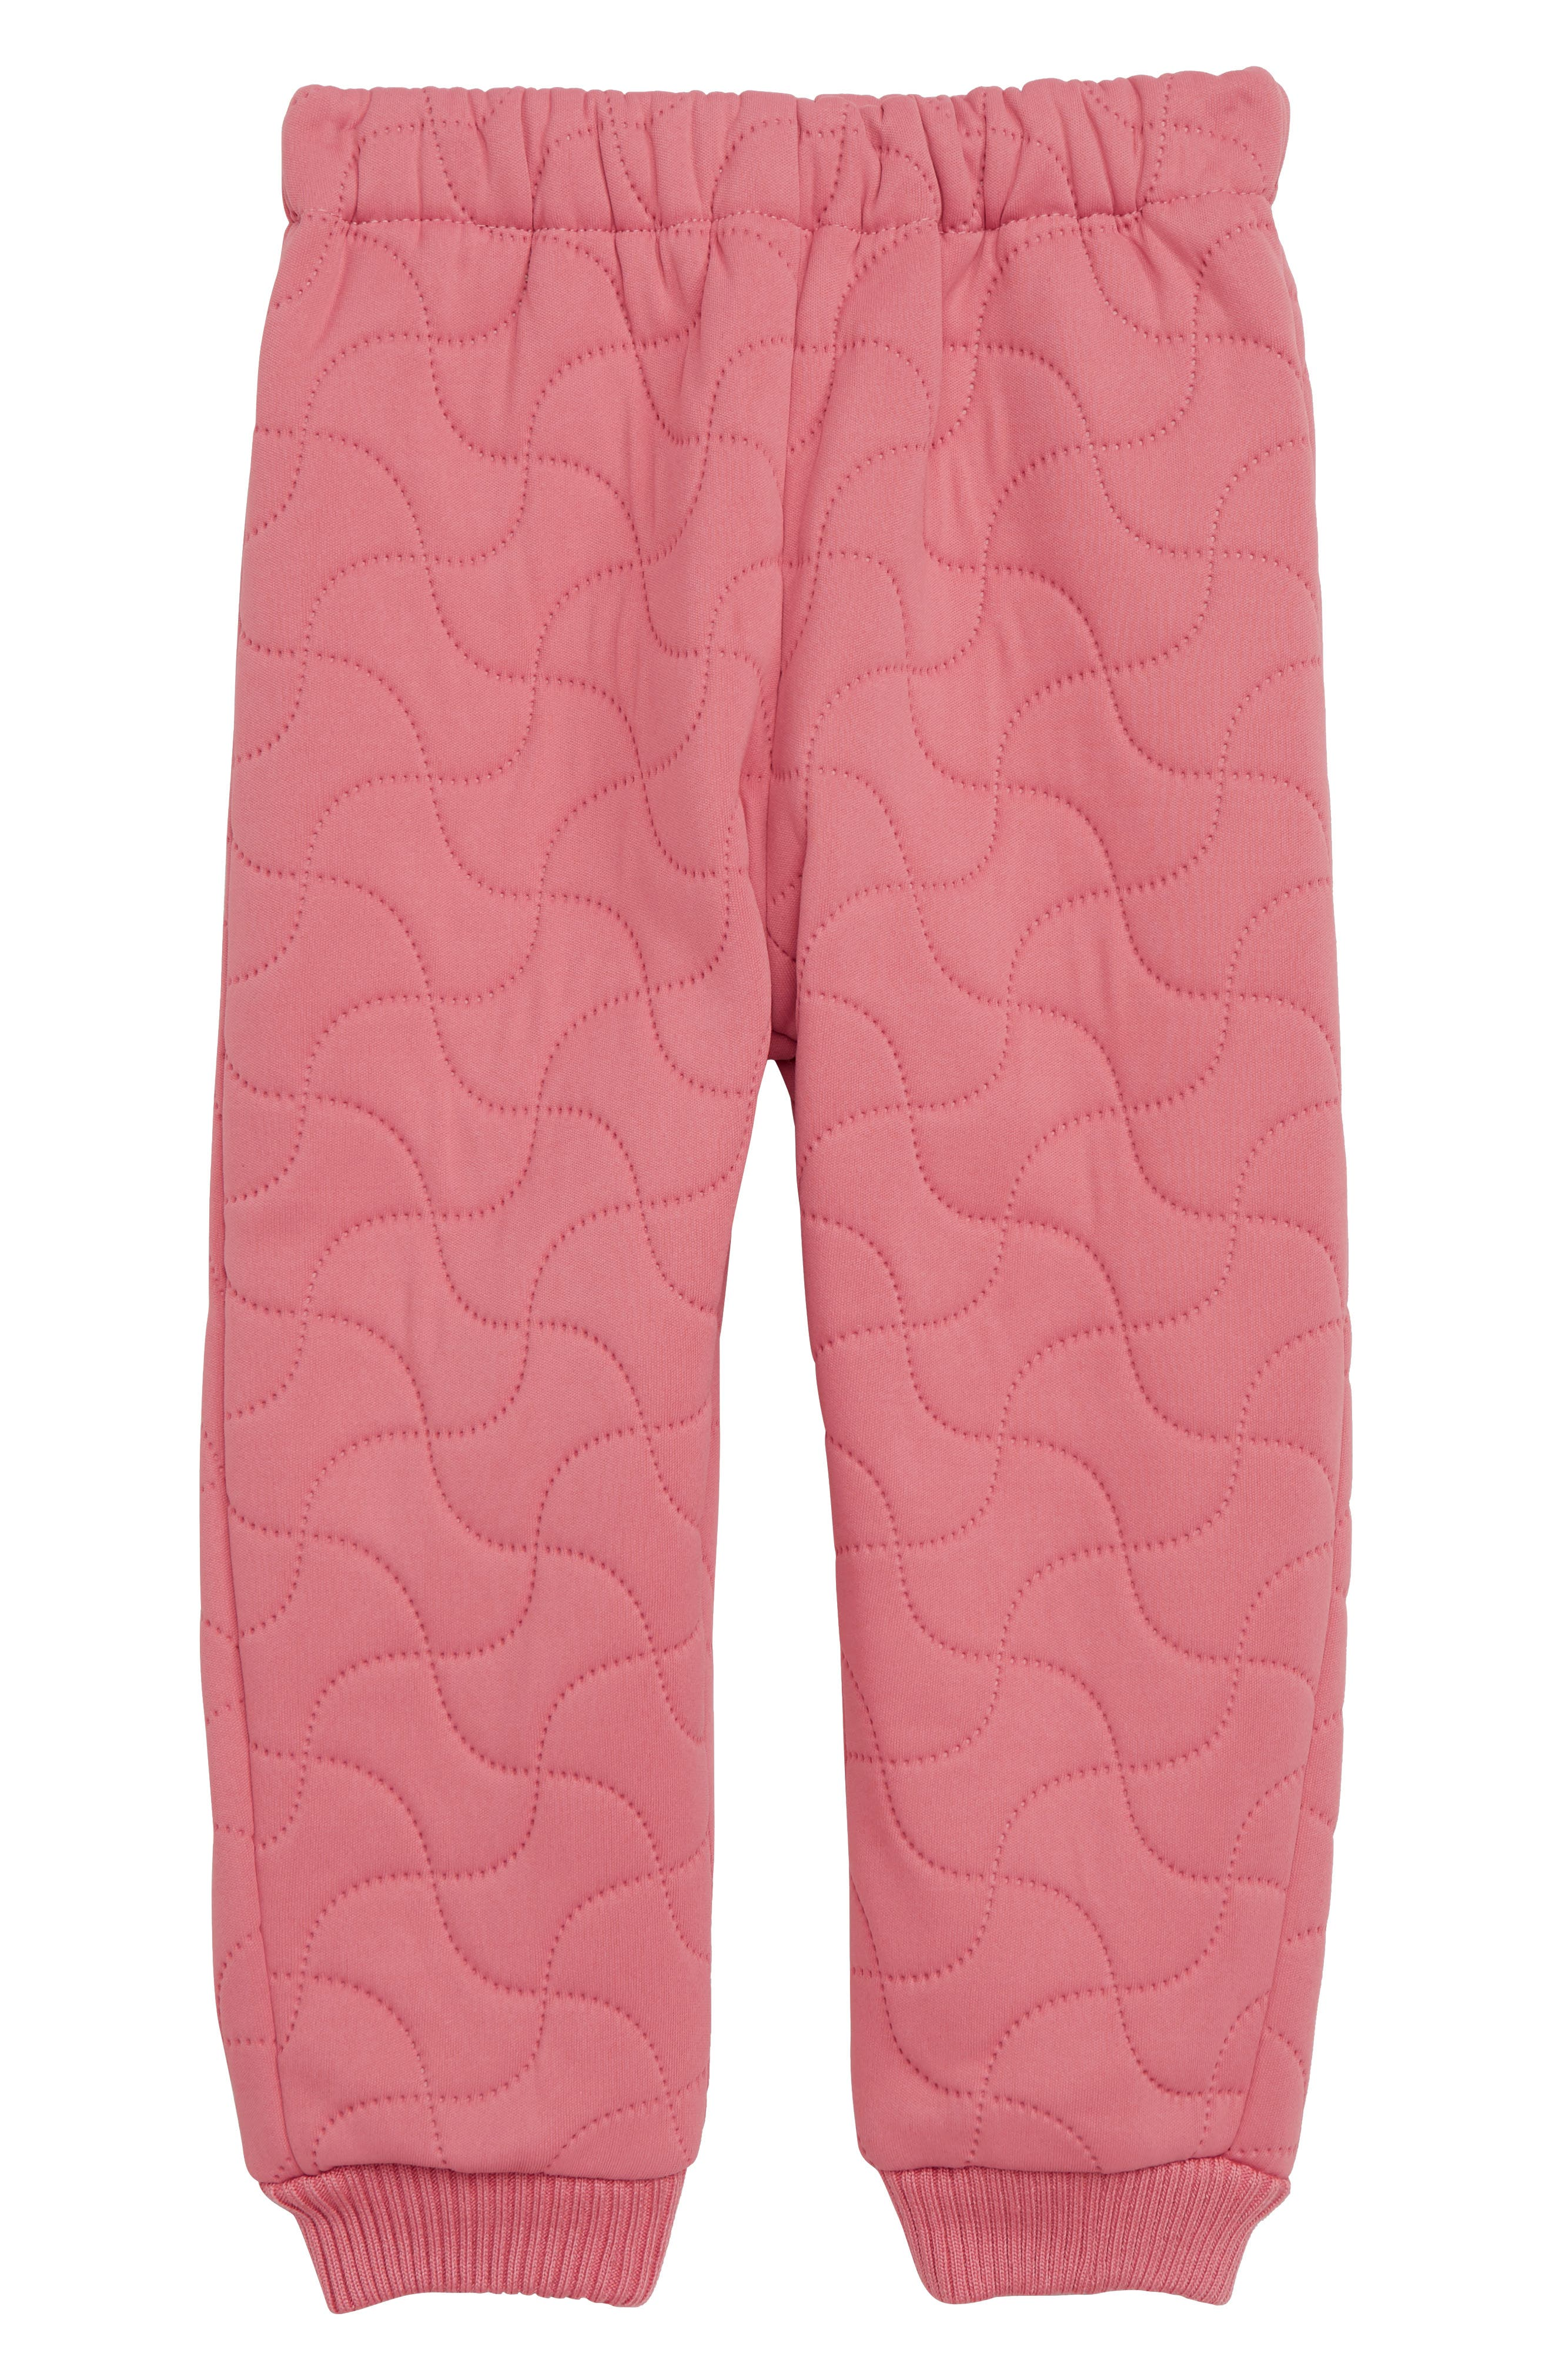 Toddler Girls Wheat Alex Water Resistant Thermal Pants Size 2Y  Pink